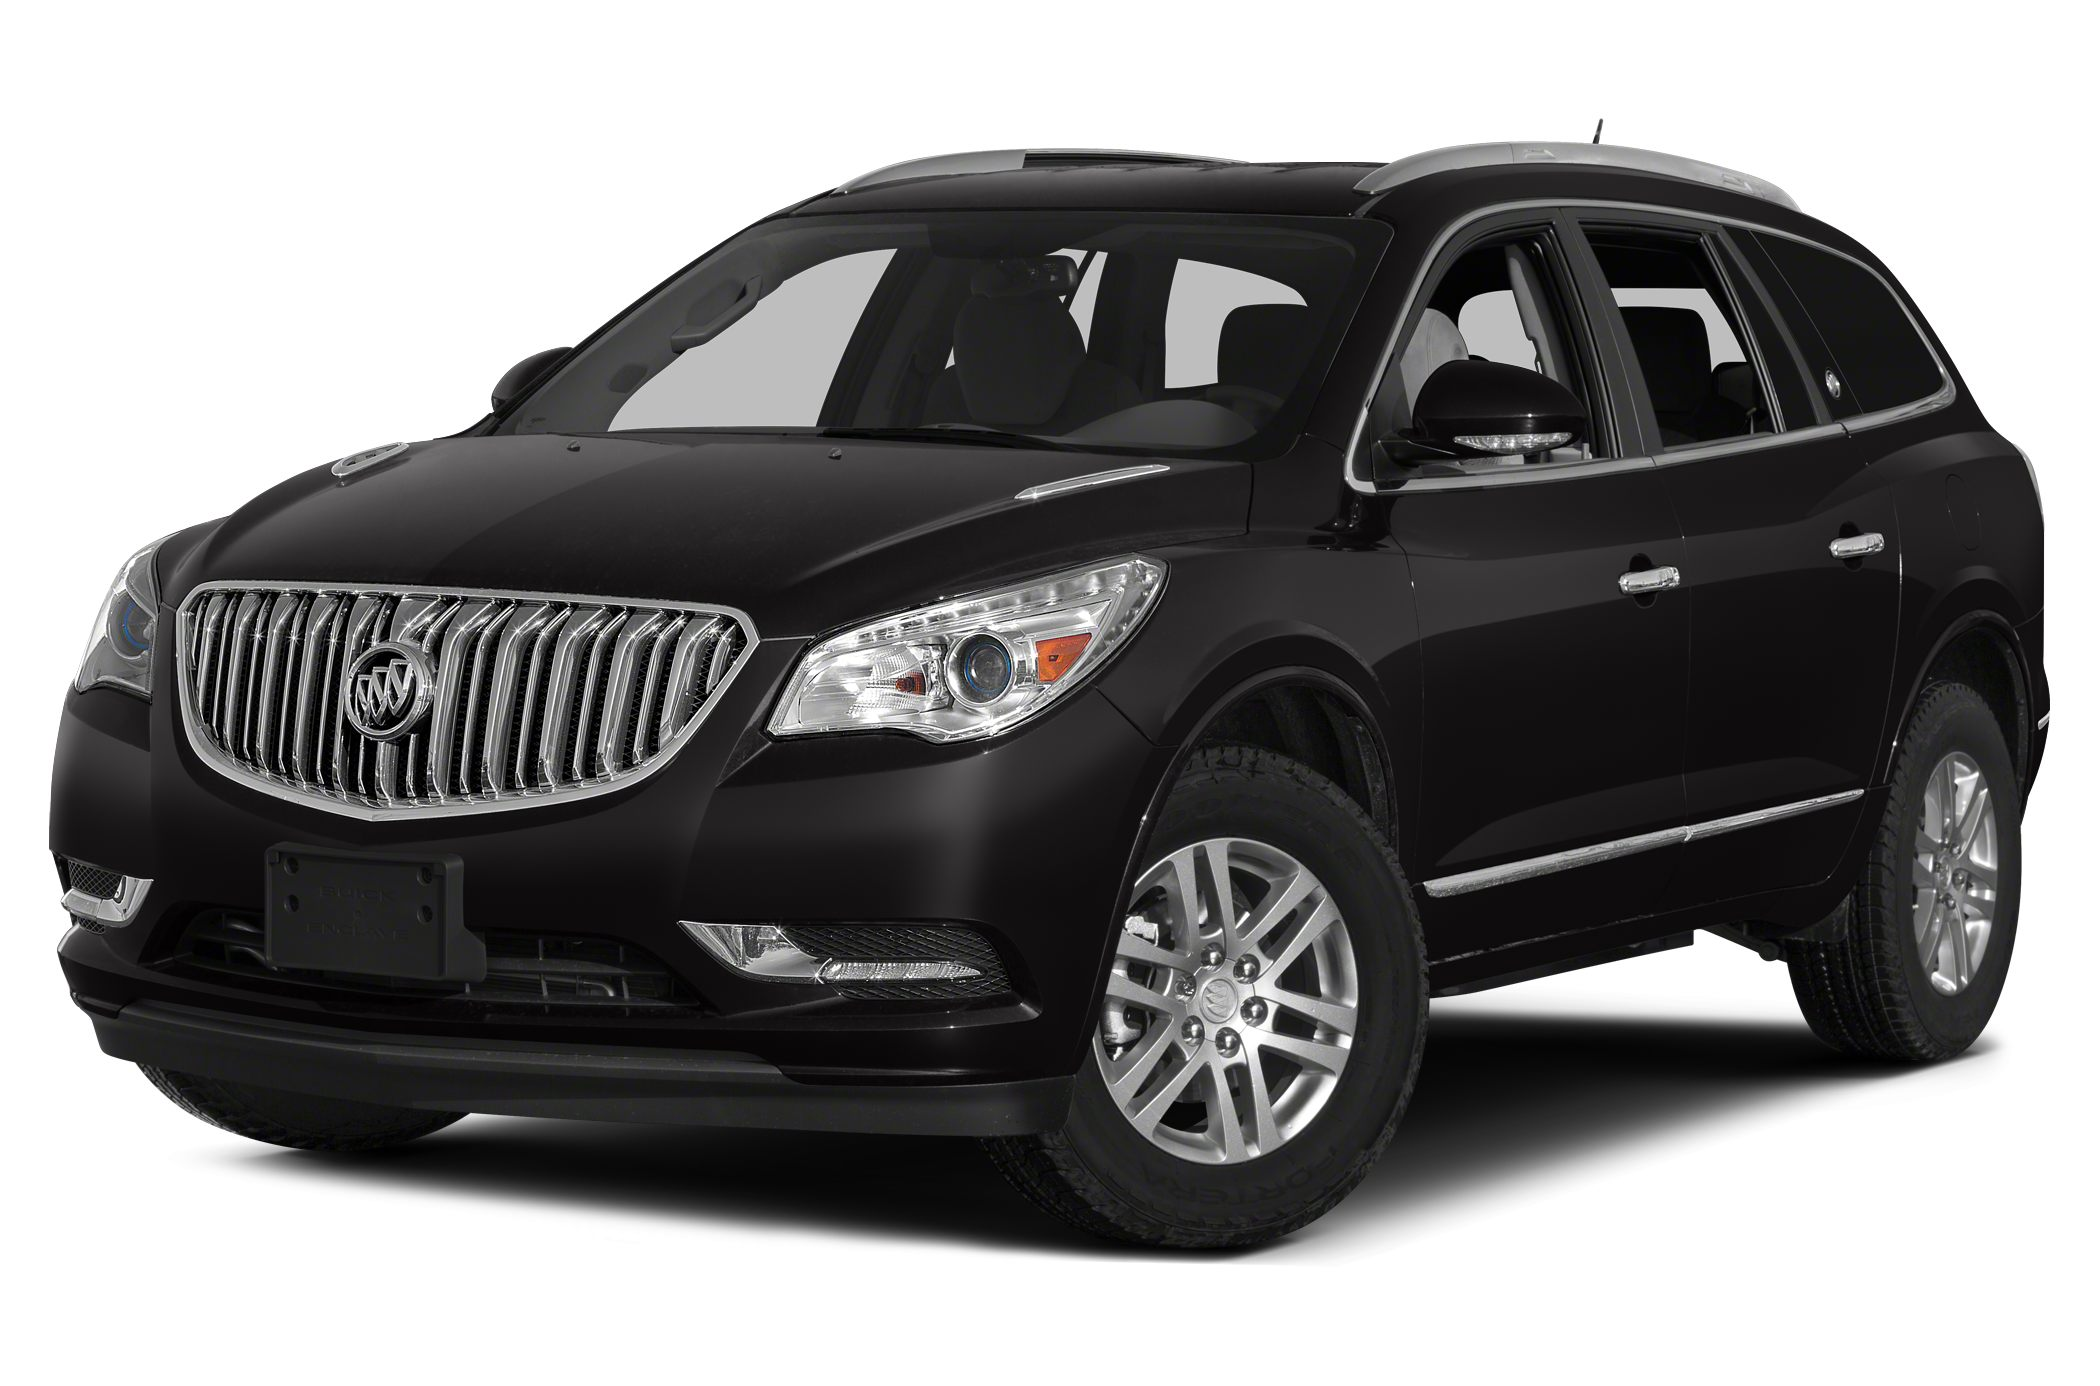 2015 Buick Enclave Leather SUV for sale in Comanche for $44,500 with 0 miles